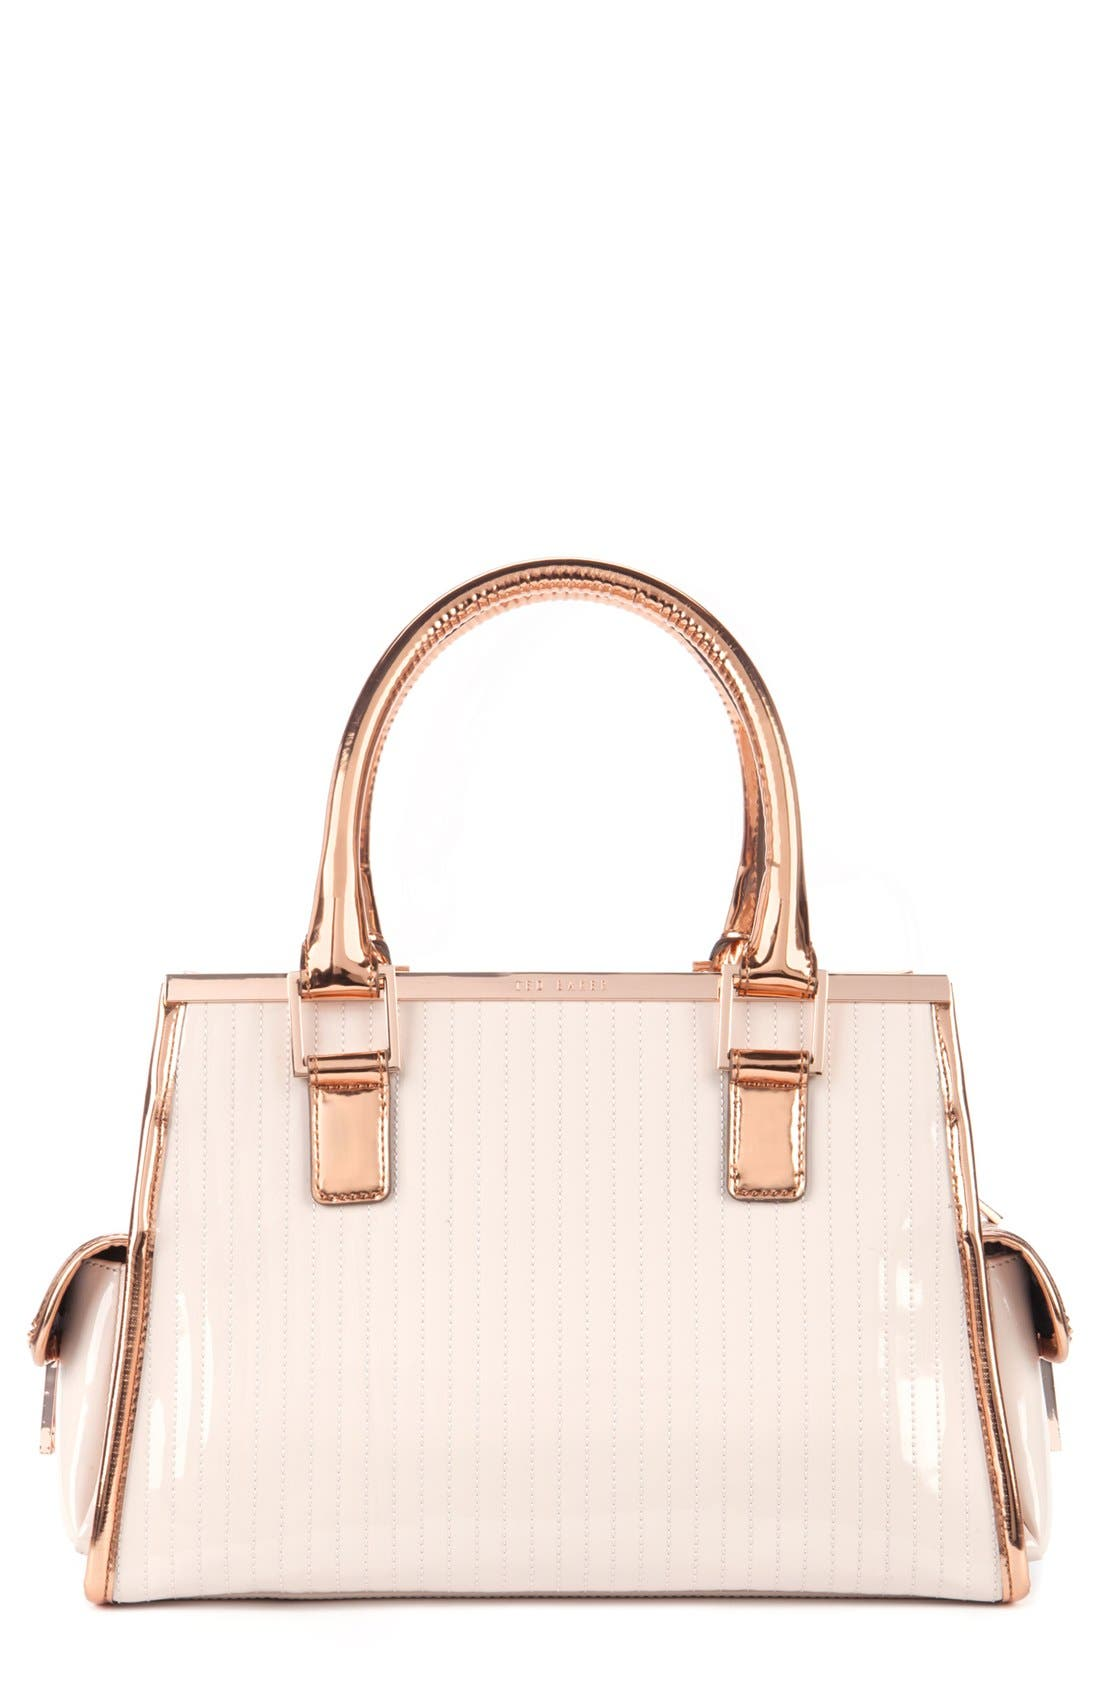 Alternate Image 1 Selected - Ted Baker London Quilted Patent Leather Tote